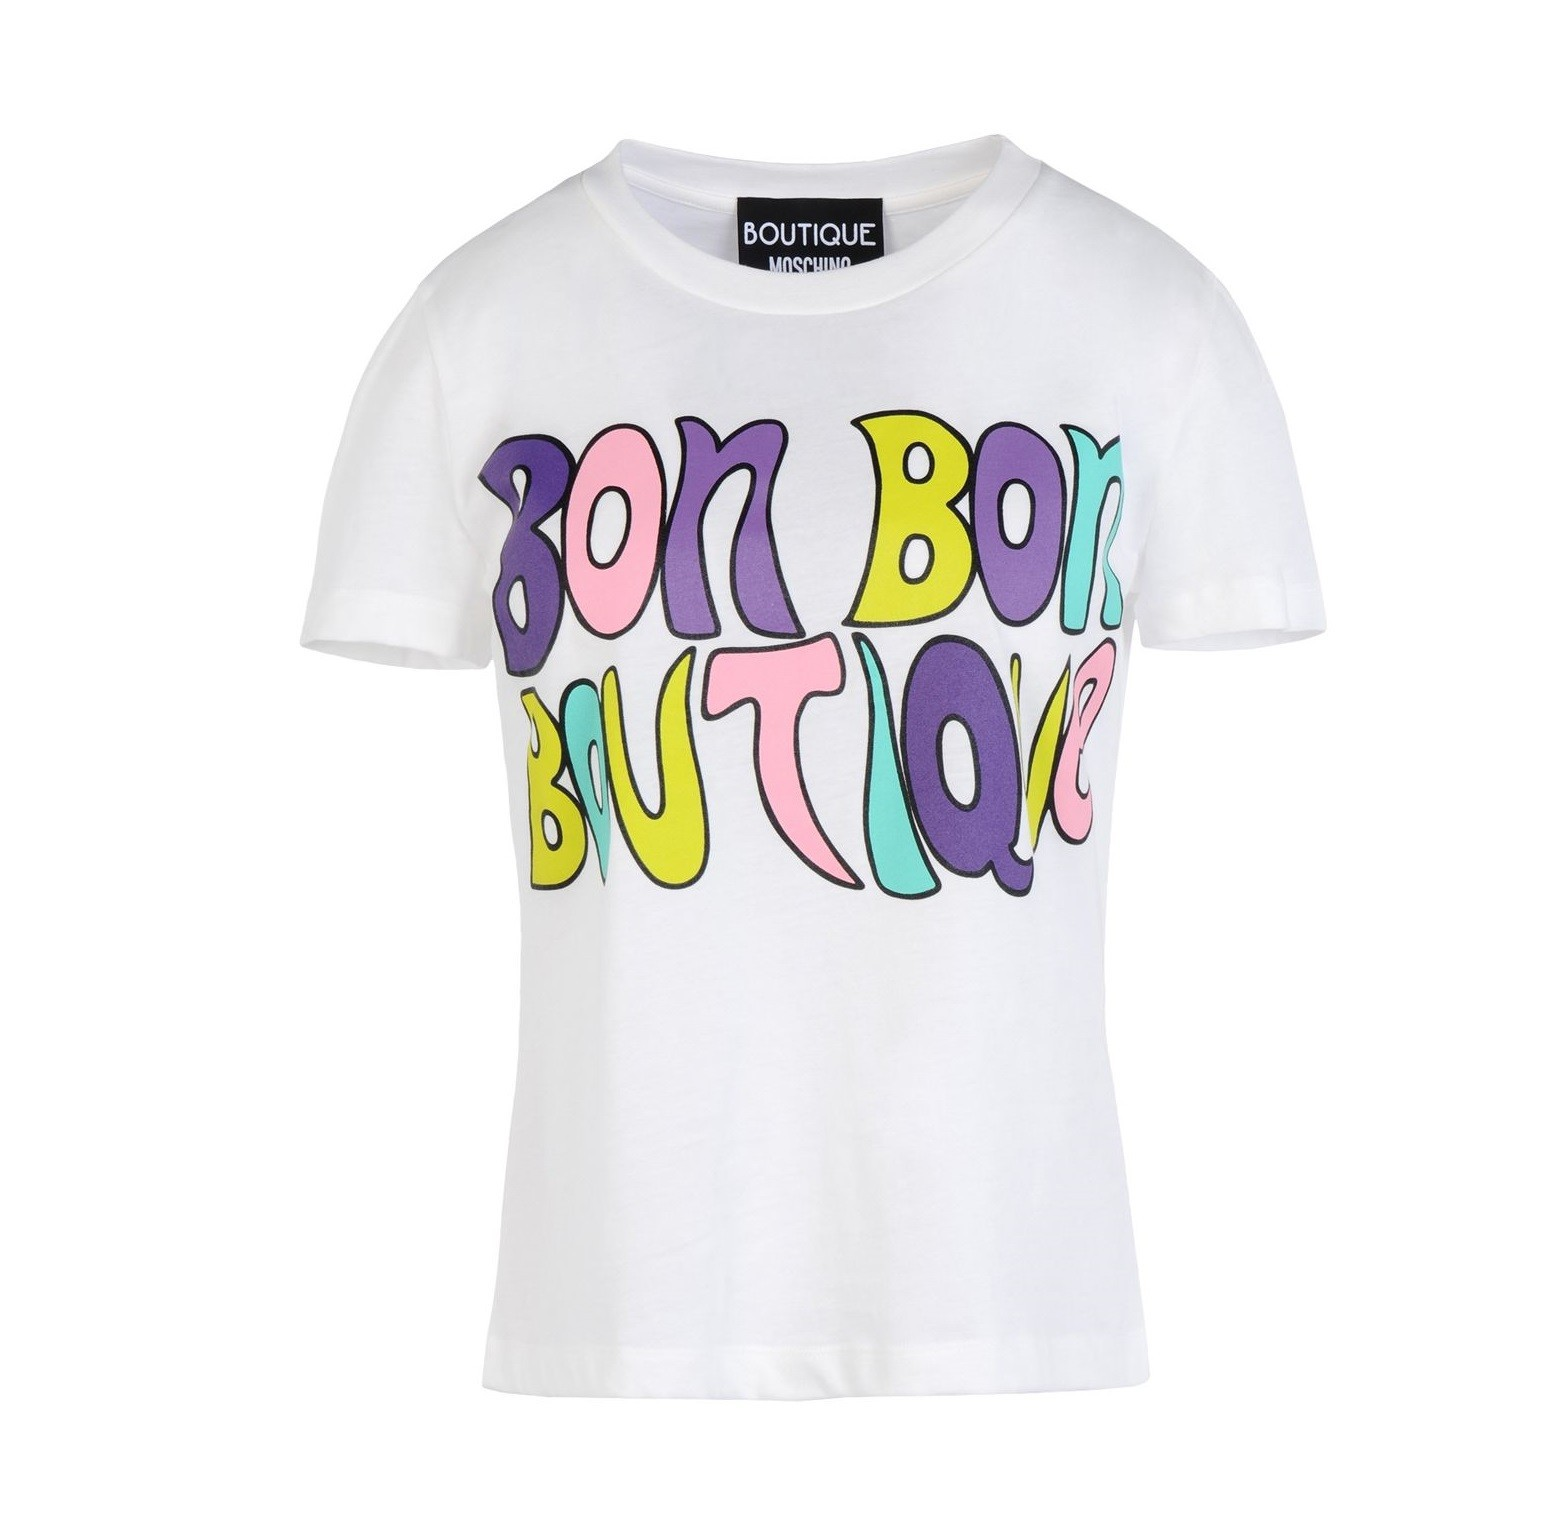 Boutique moschino tshirt ra1203